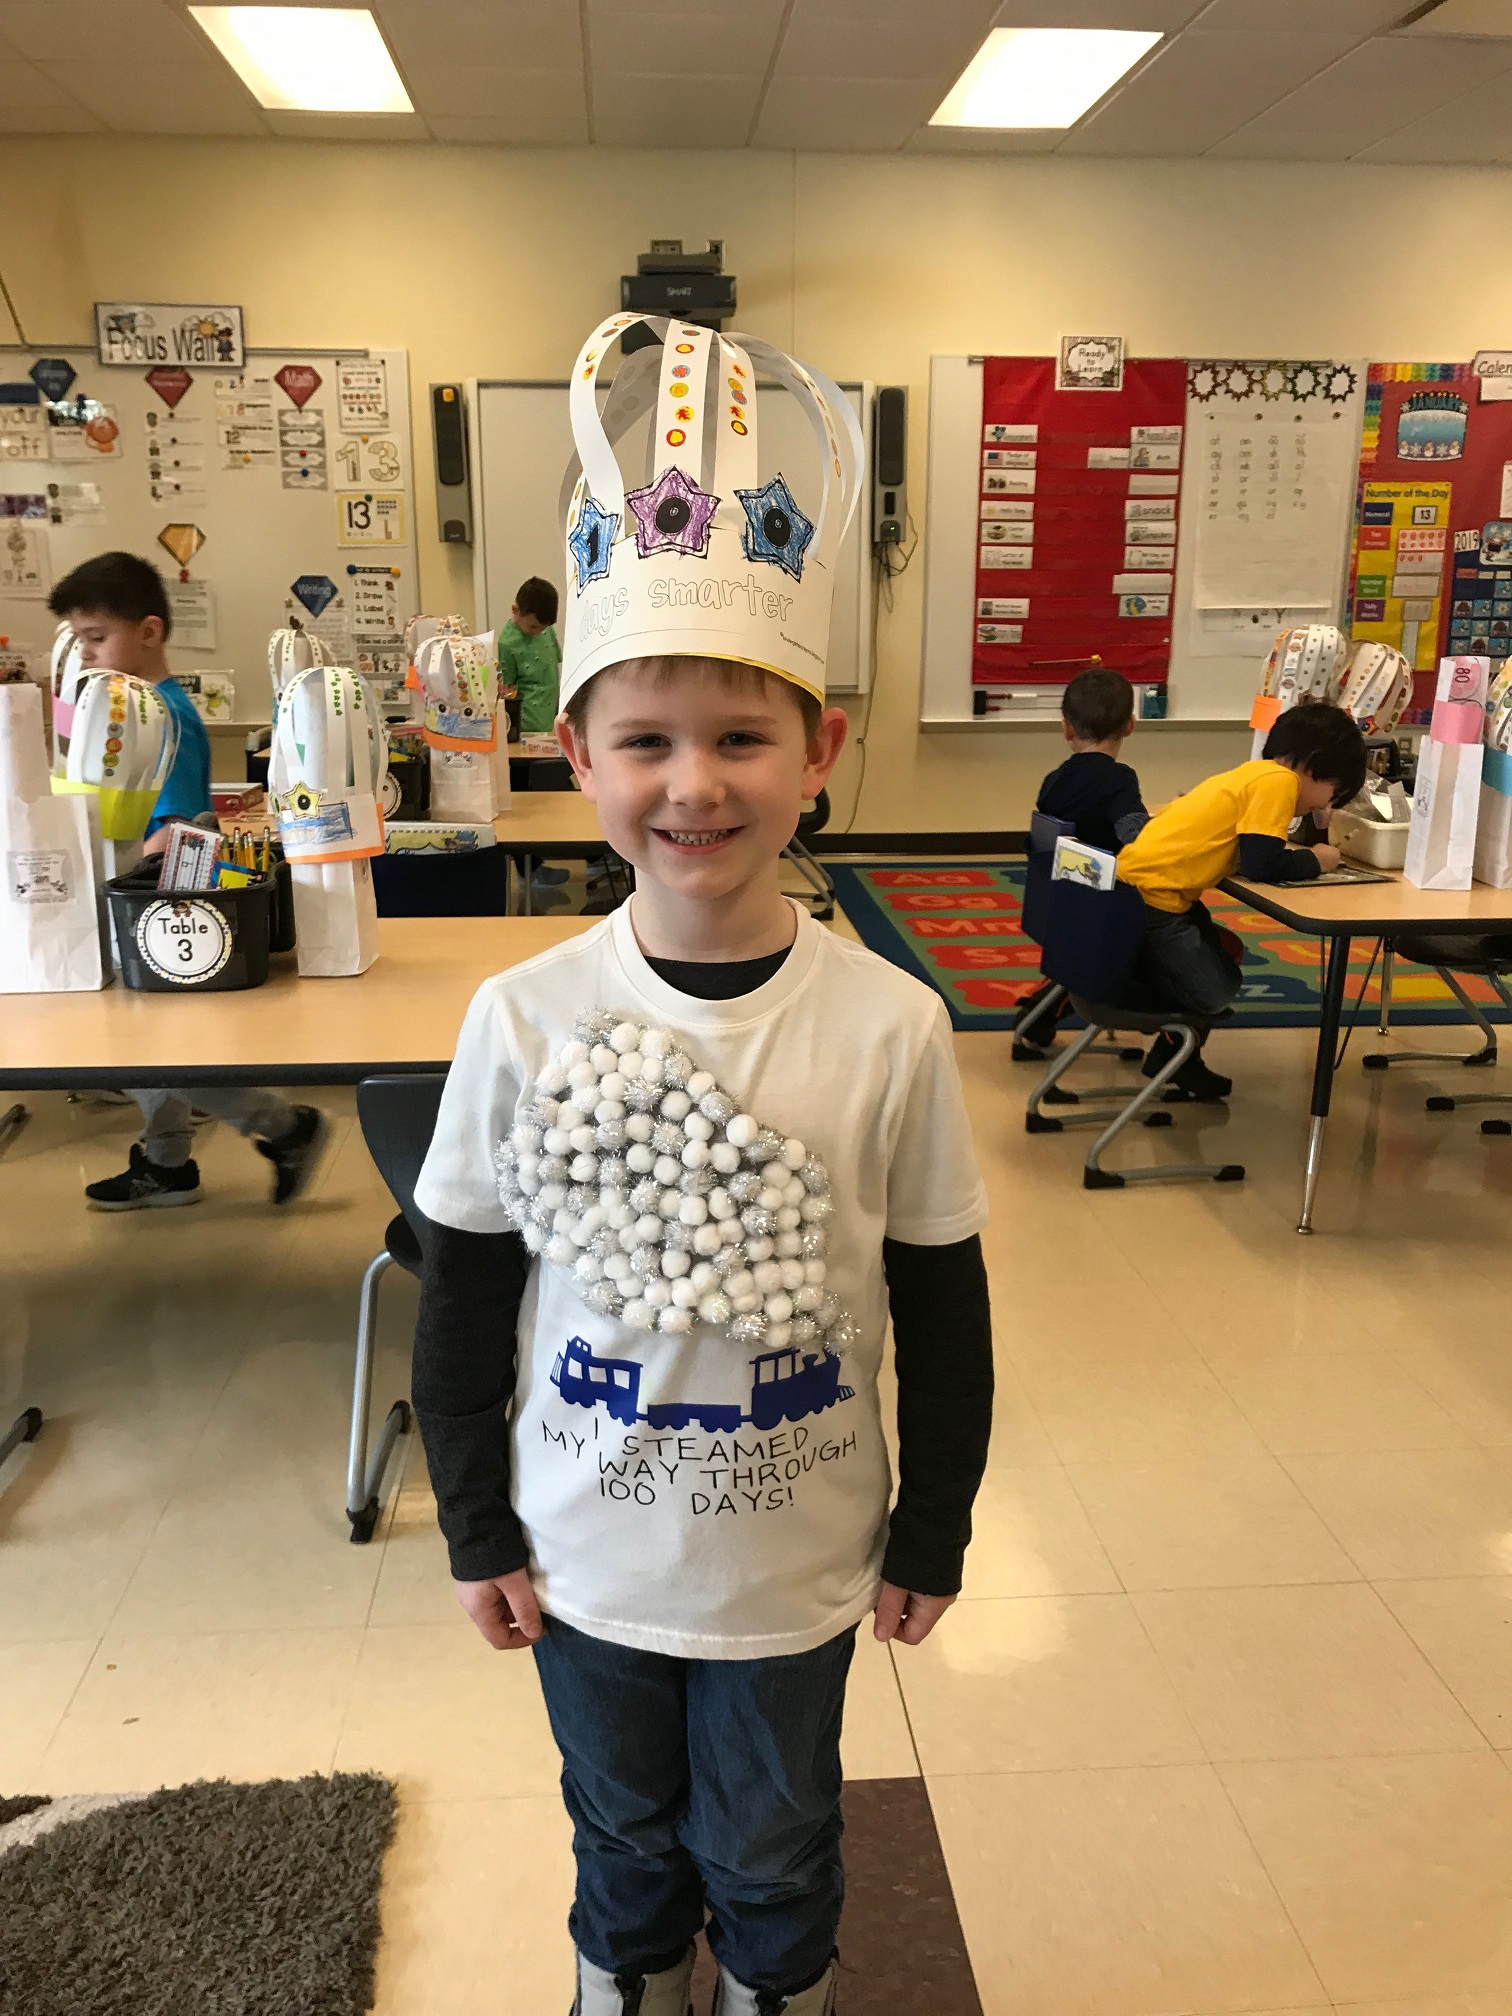 Protsman Elementary Kindergartner Quinlan Denihan a student in Ms. White's class, happily celebrated the 100th Day of school with his classmates.